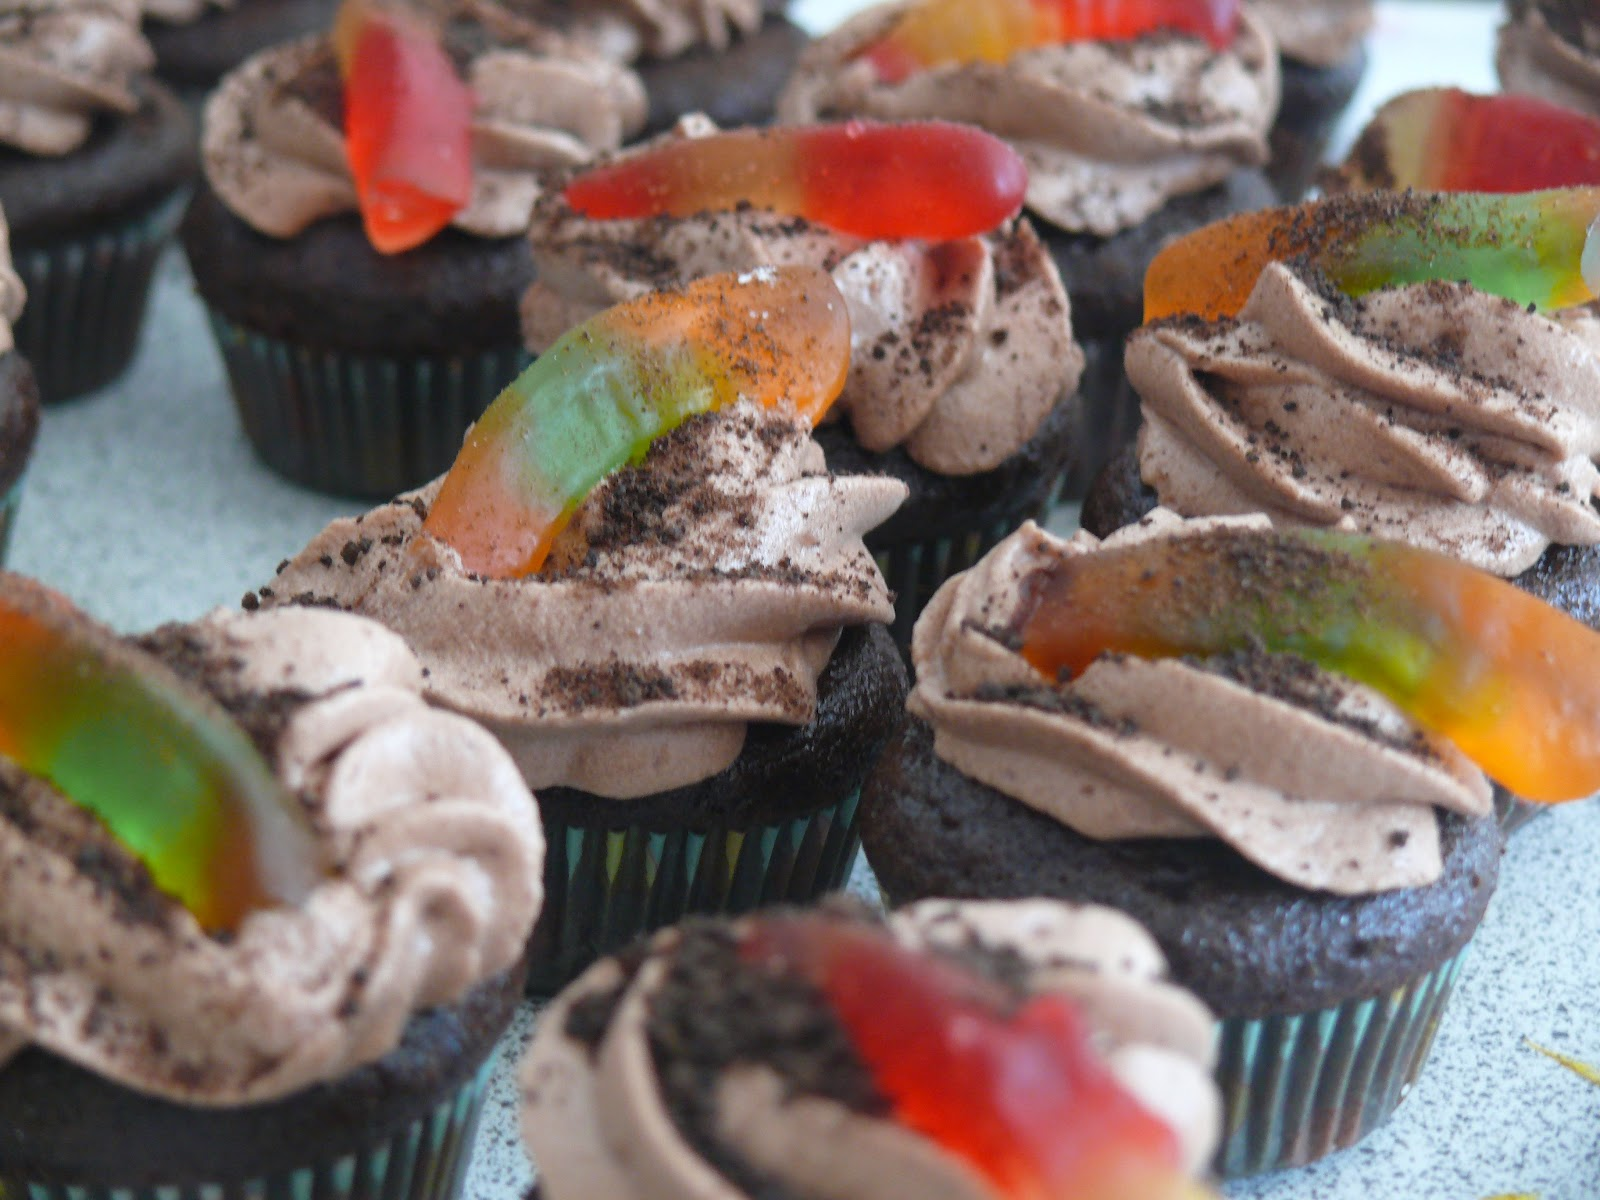 EAT TREATS: WORMS AND DIRT CUPCAKES | Busy Mama